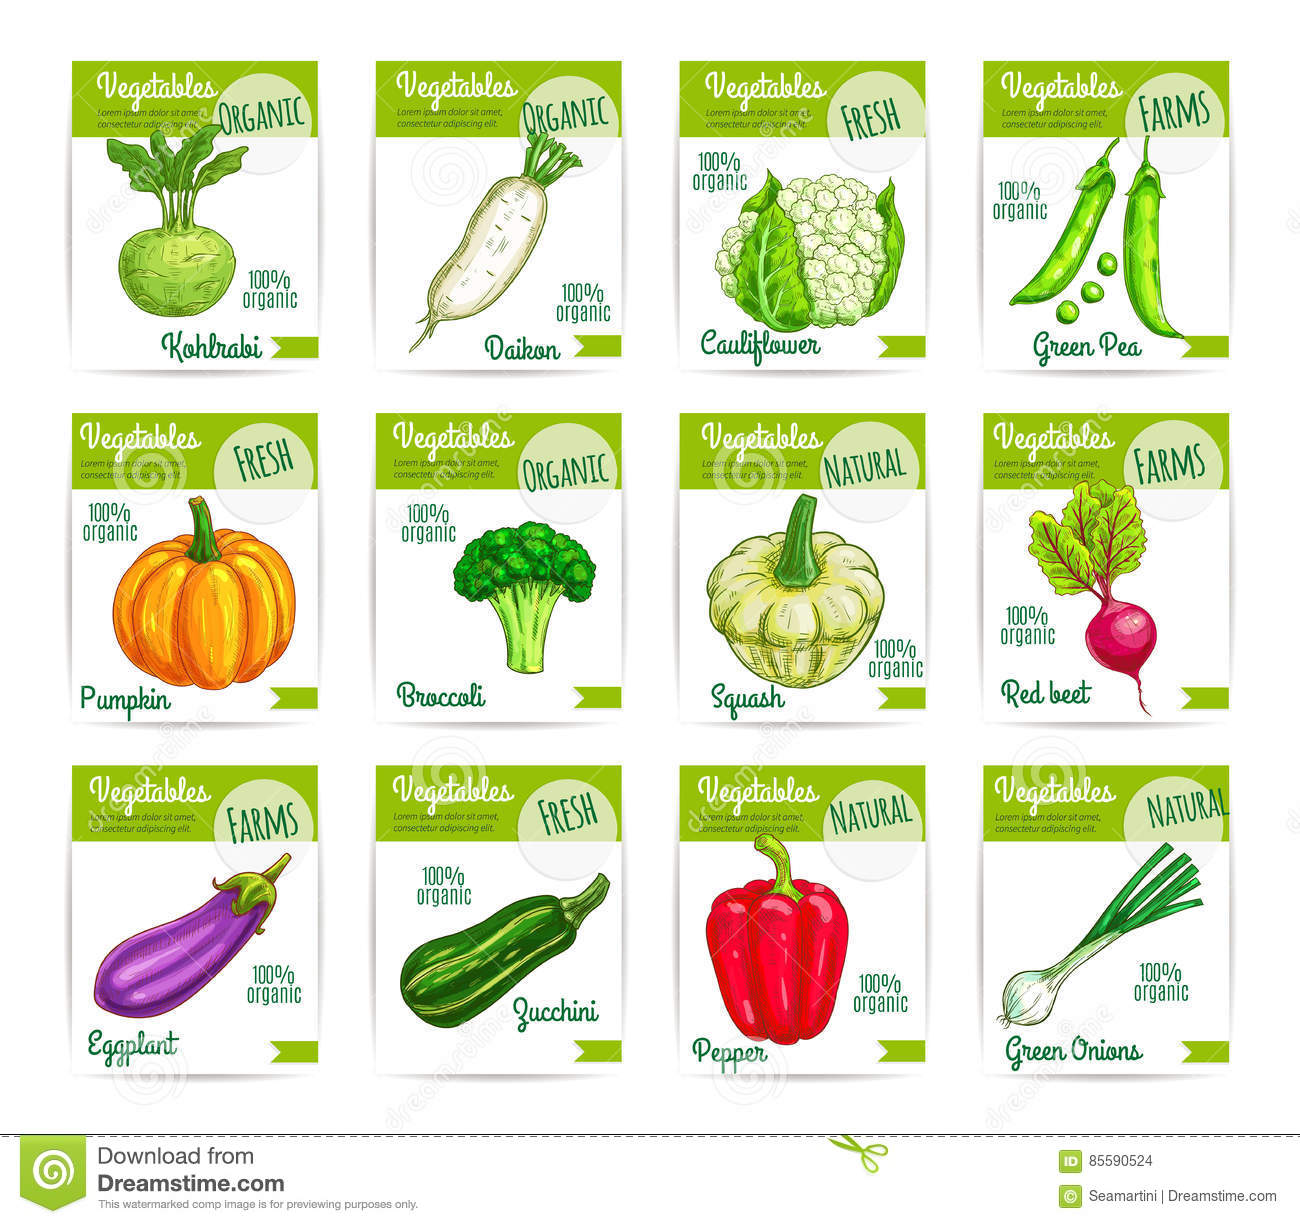 Printable Vegetable Garden Markers Pictures to Pin on ...